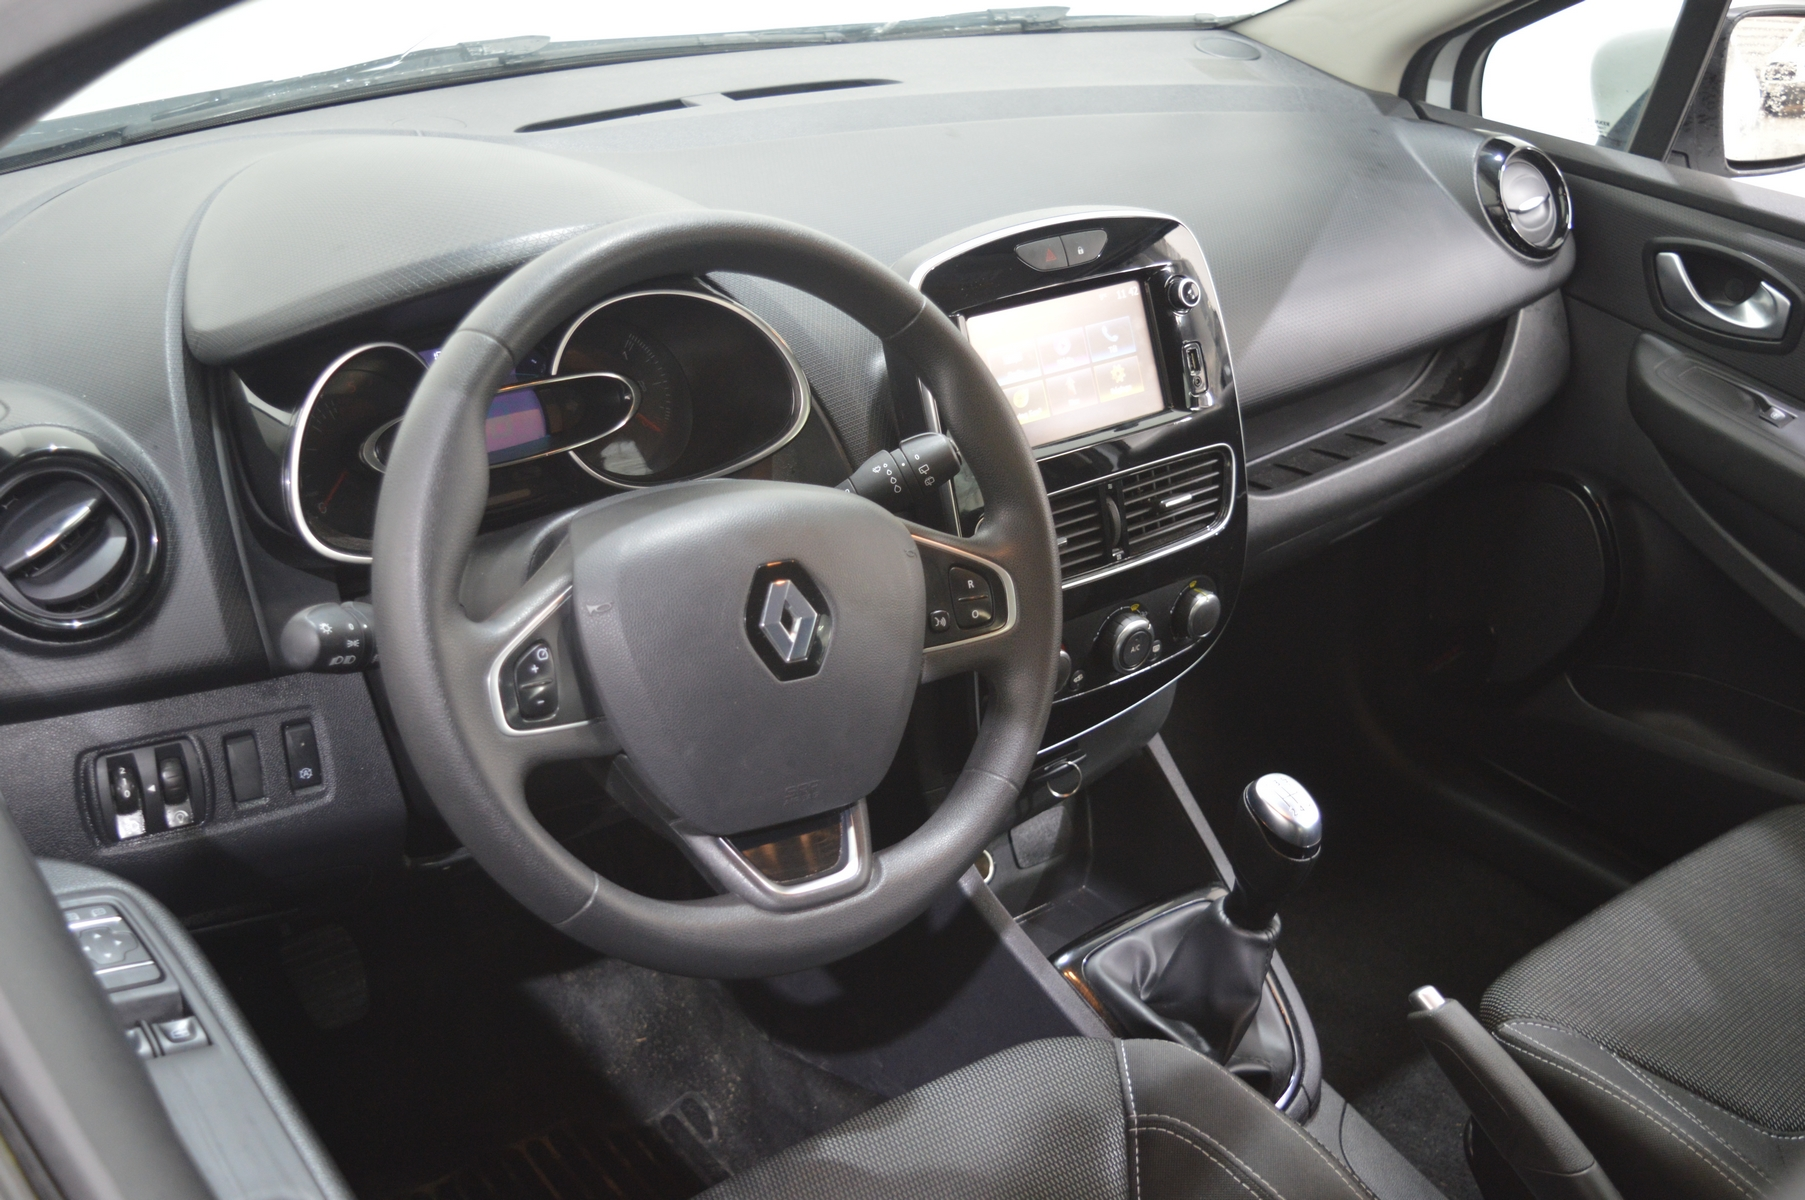 RENAULT CLIO IV SOCIETE 2018 à 7400 € - Photo n°8